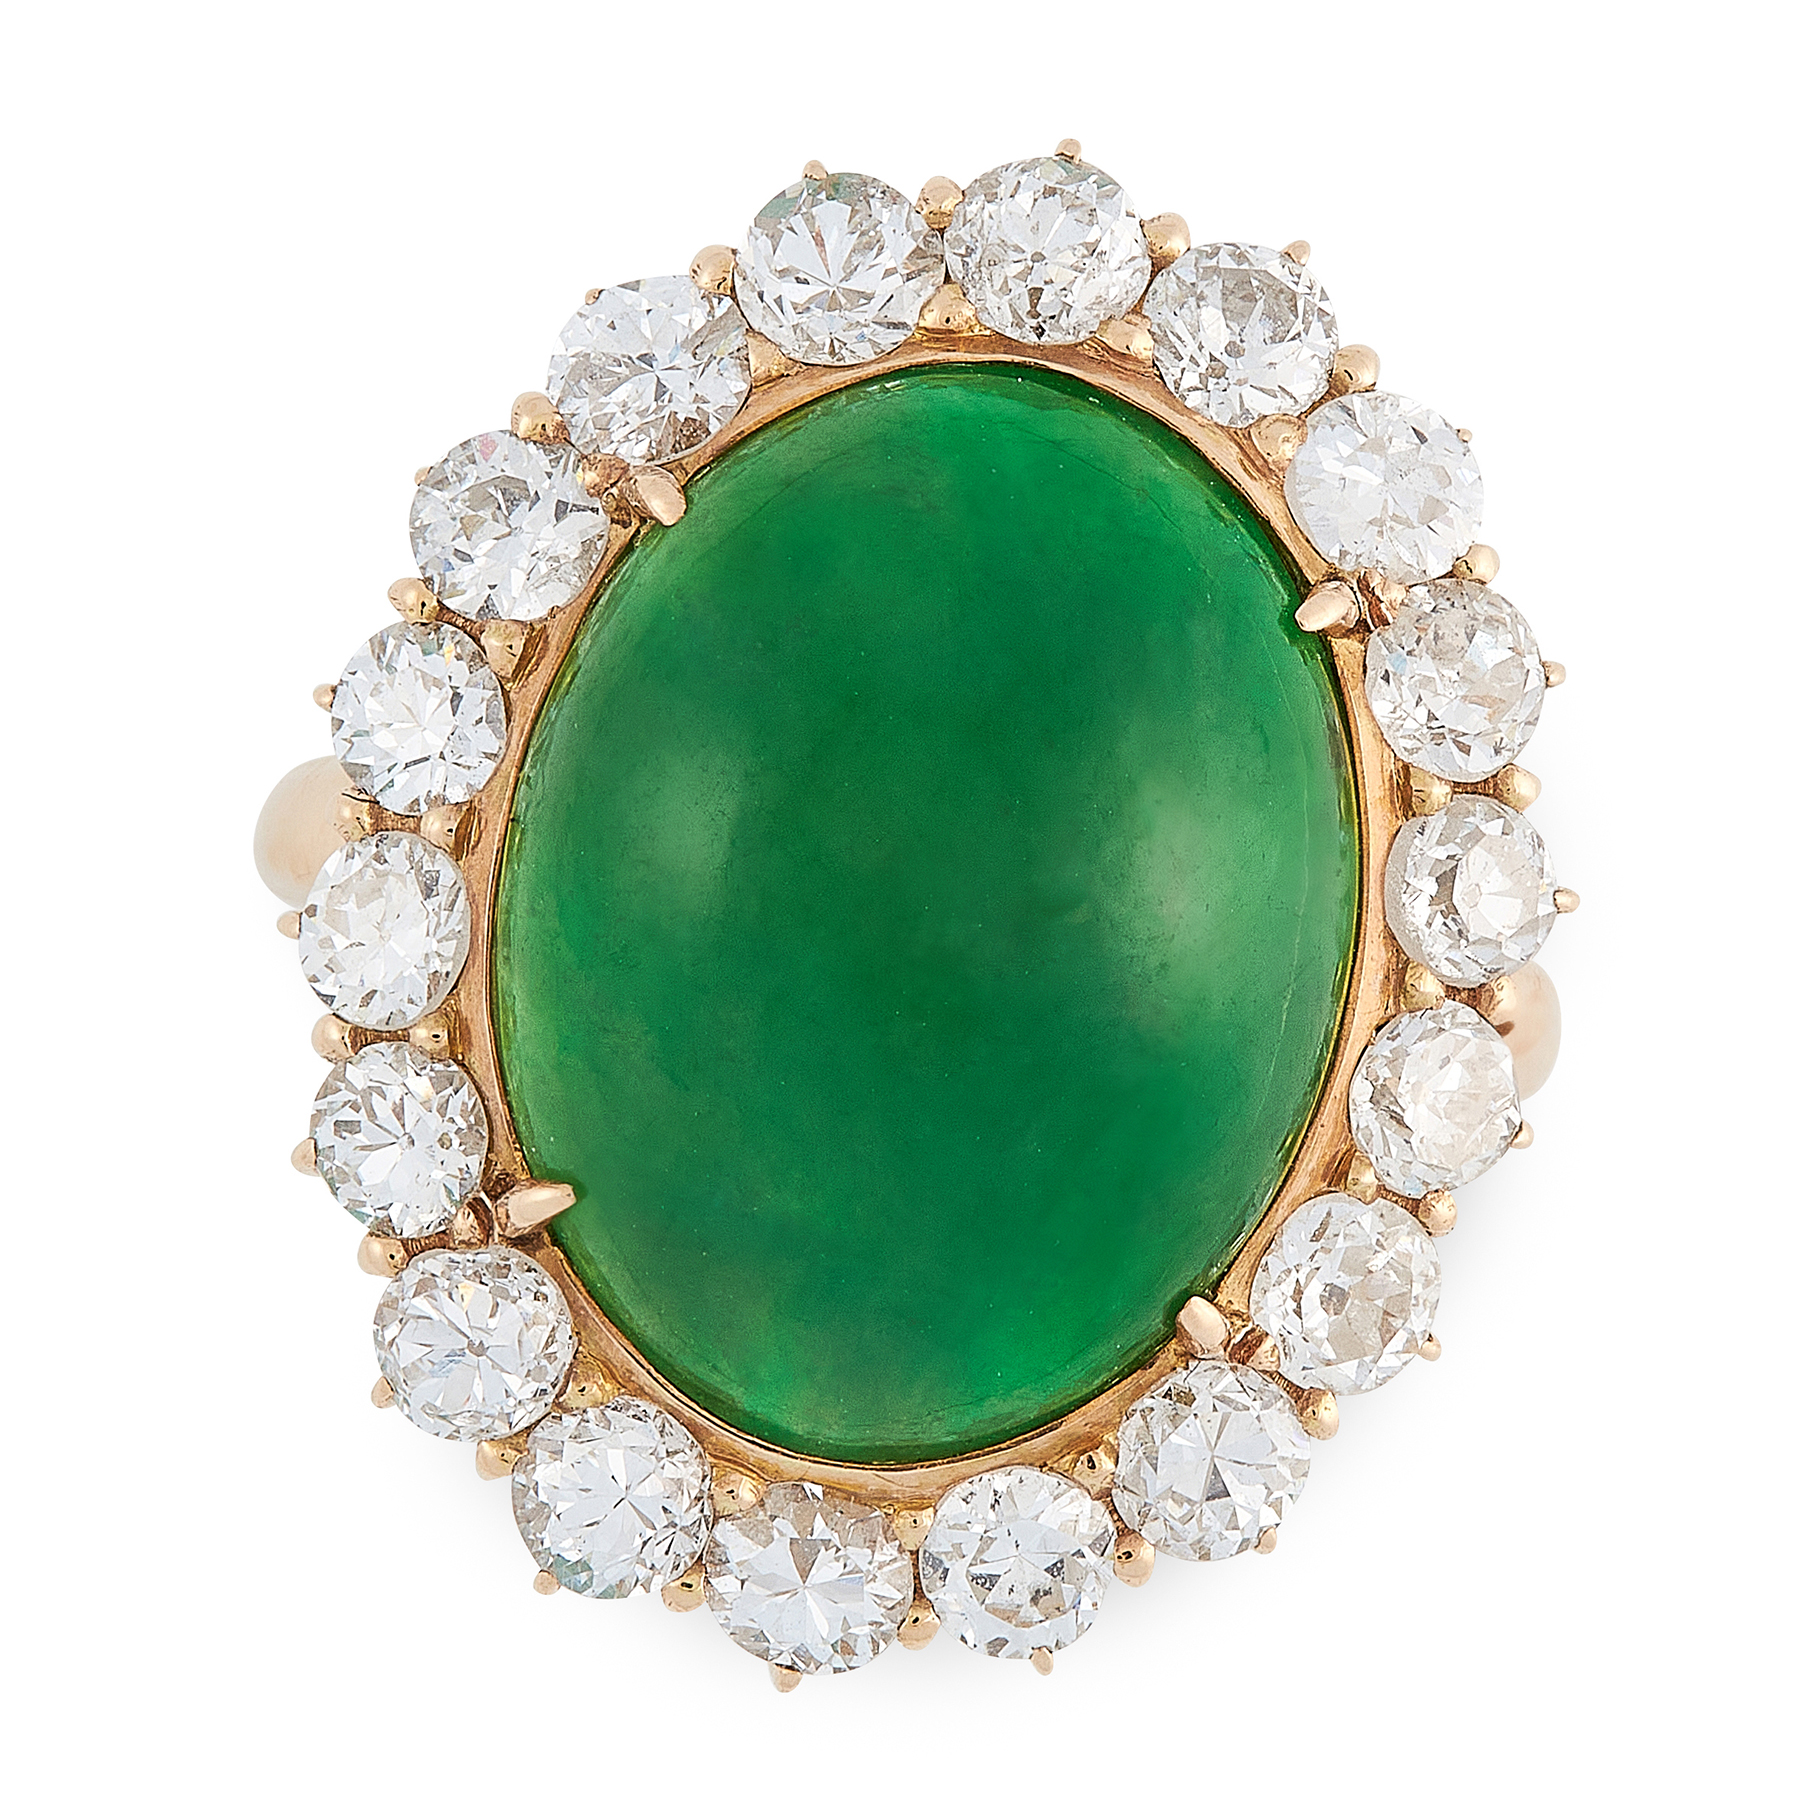 A JADEITE JADE AND DIAMOND RING in 18ct yellow gold, set with an oval jadeite cabochon of 12.40